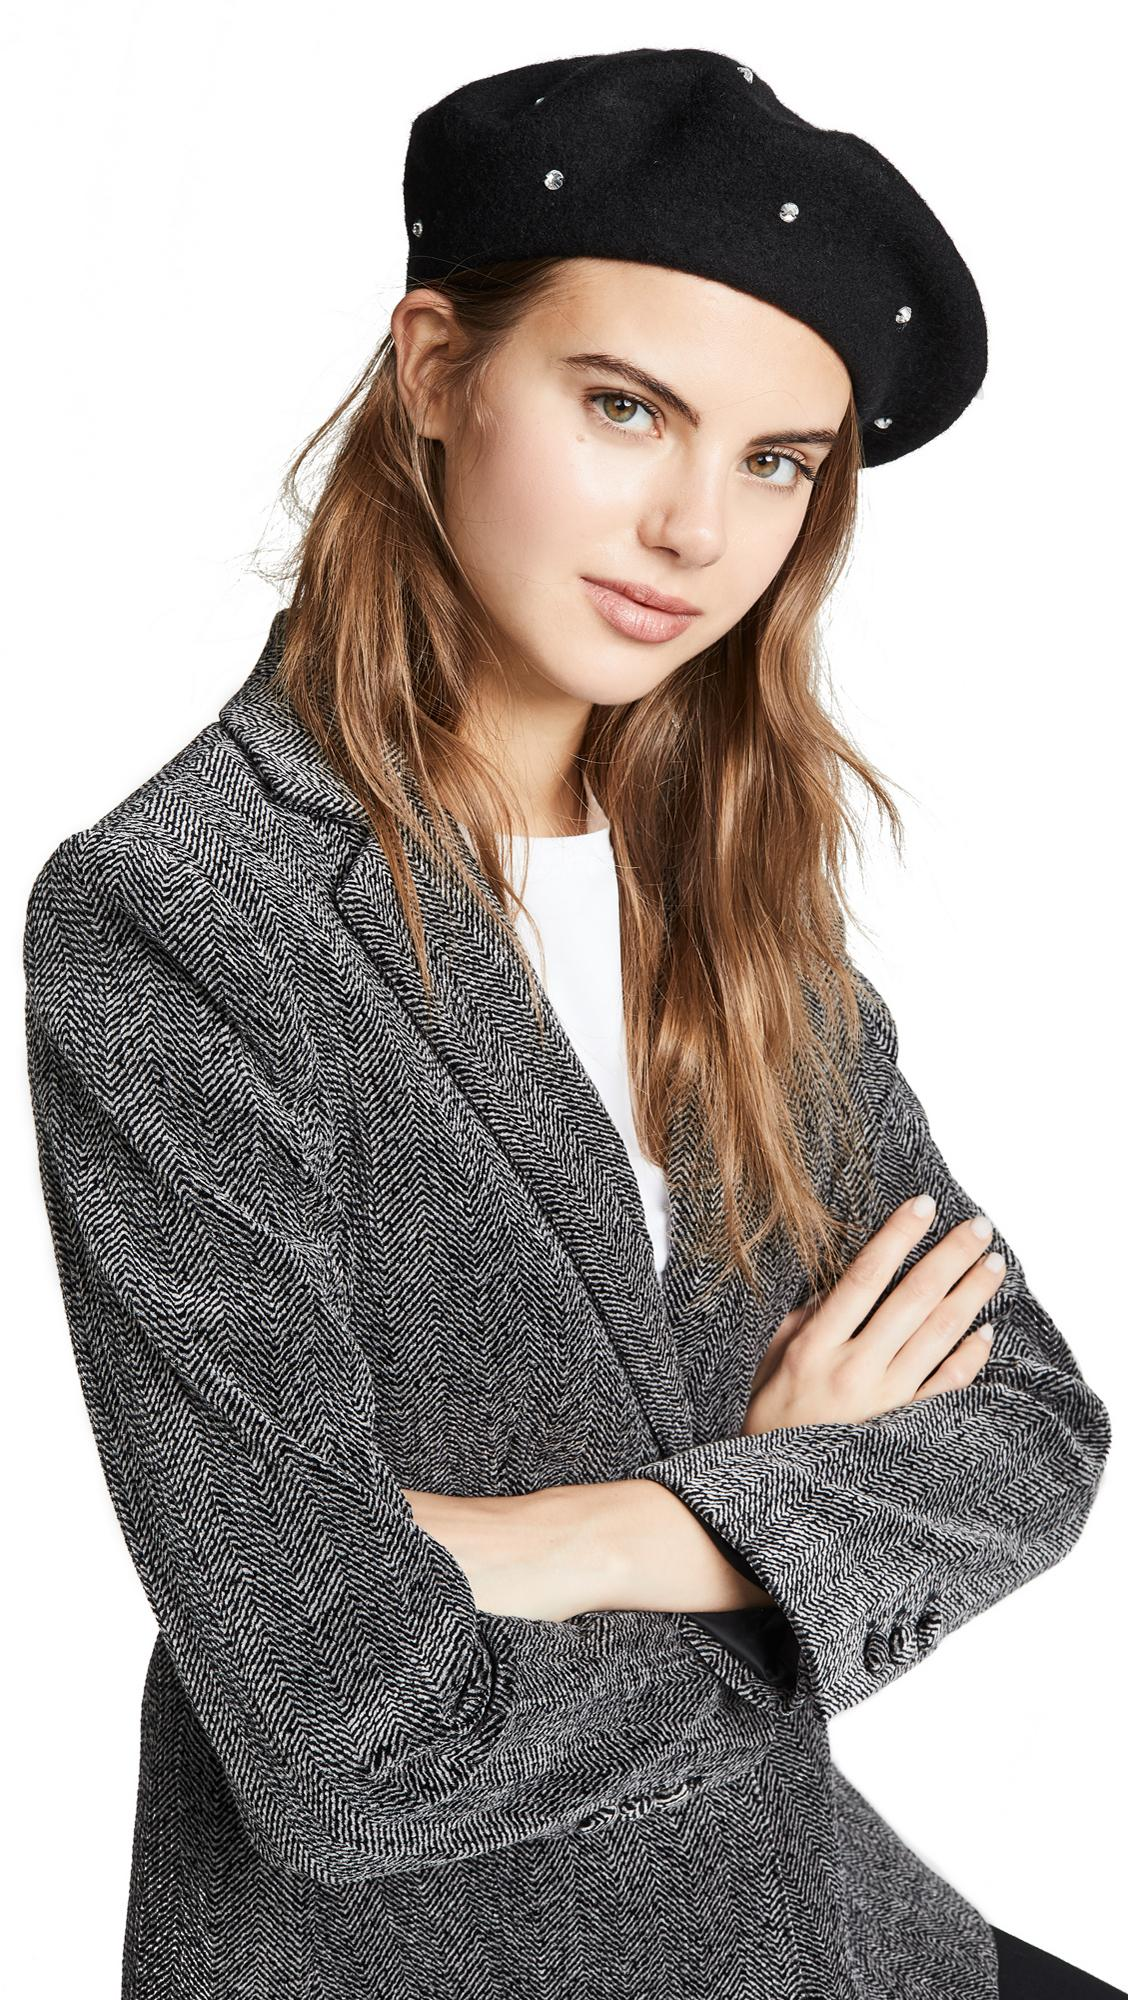 d9f49963fcb63c Kate Spade Bedazzled Beret Hat In Black/Smoke | ModeSens